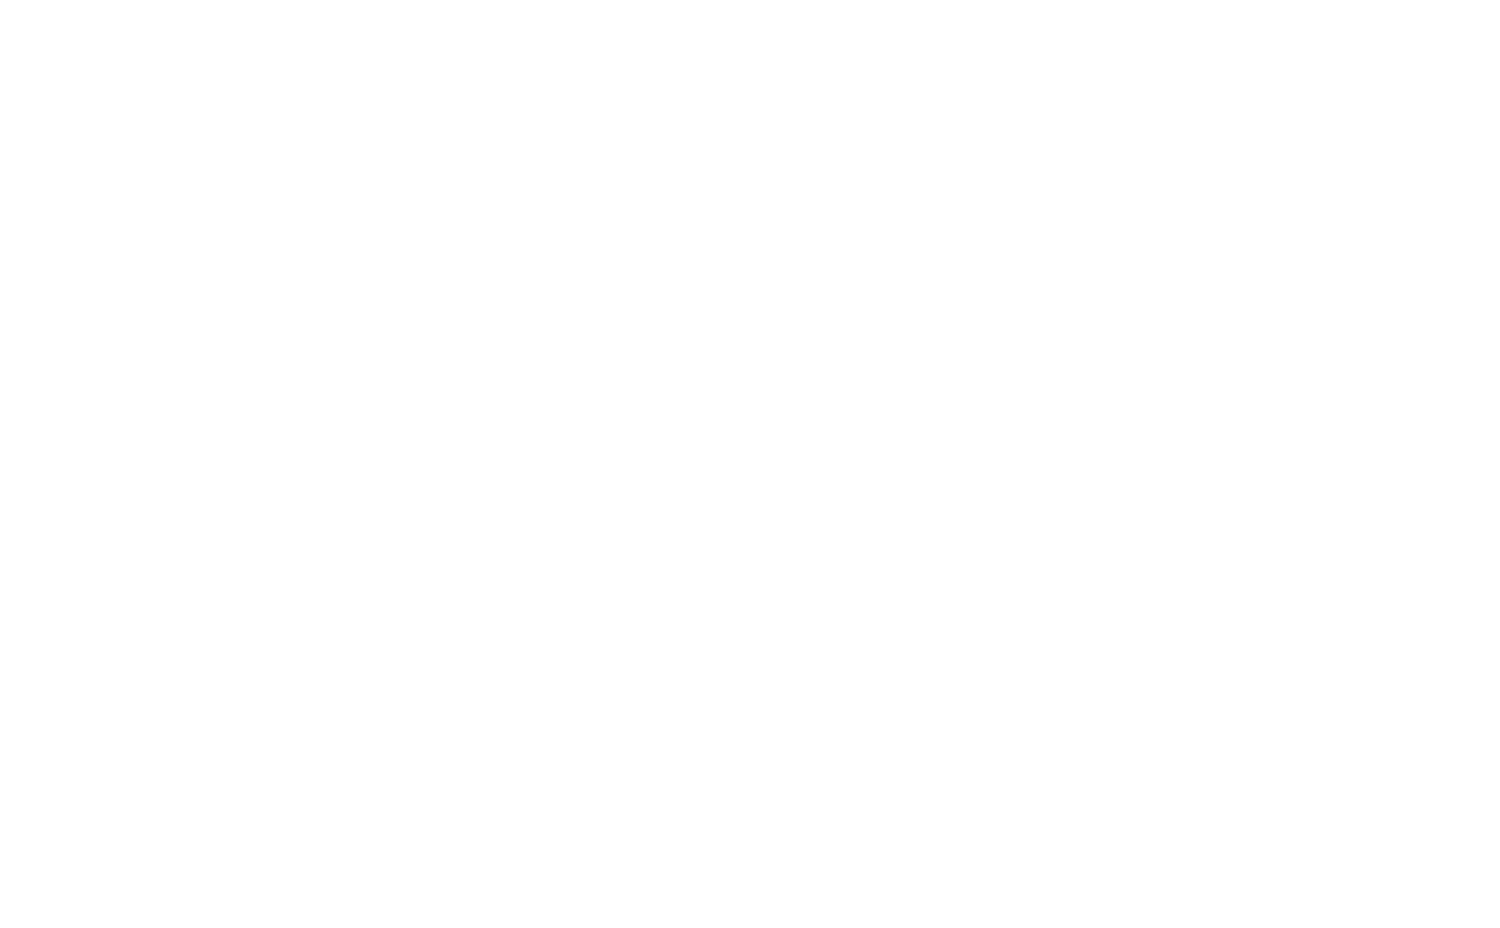 Savannah Cordwainers